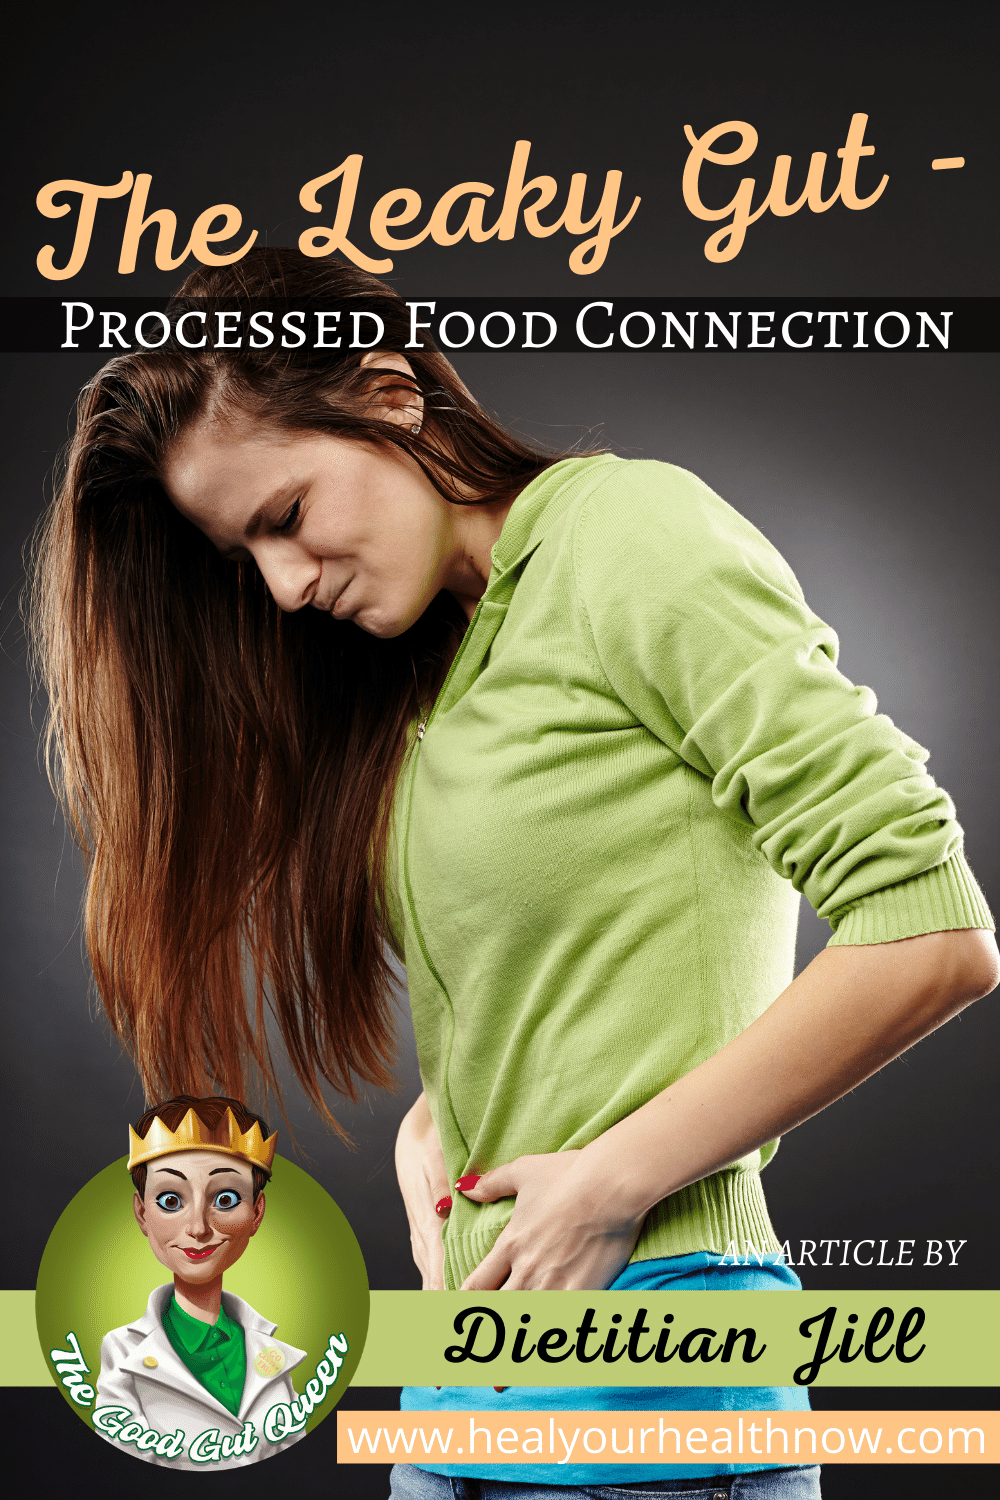 The Leaky Gut-Processed Food Connection